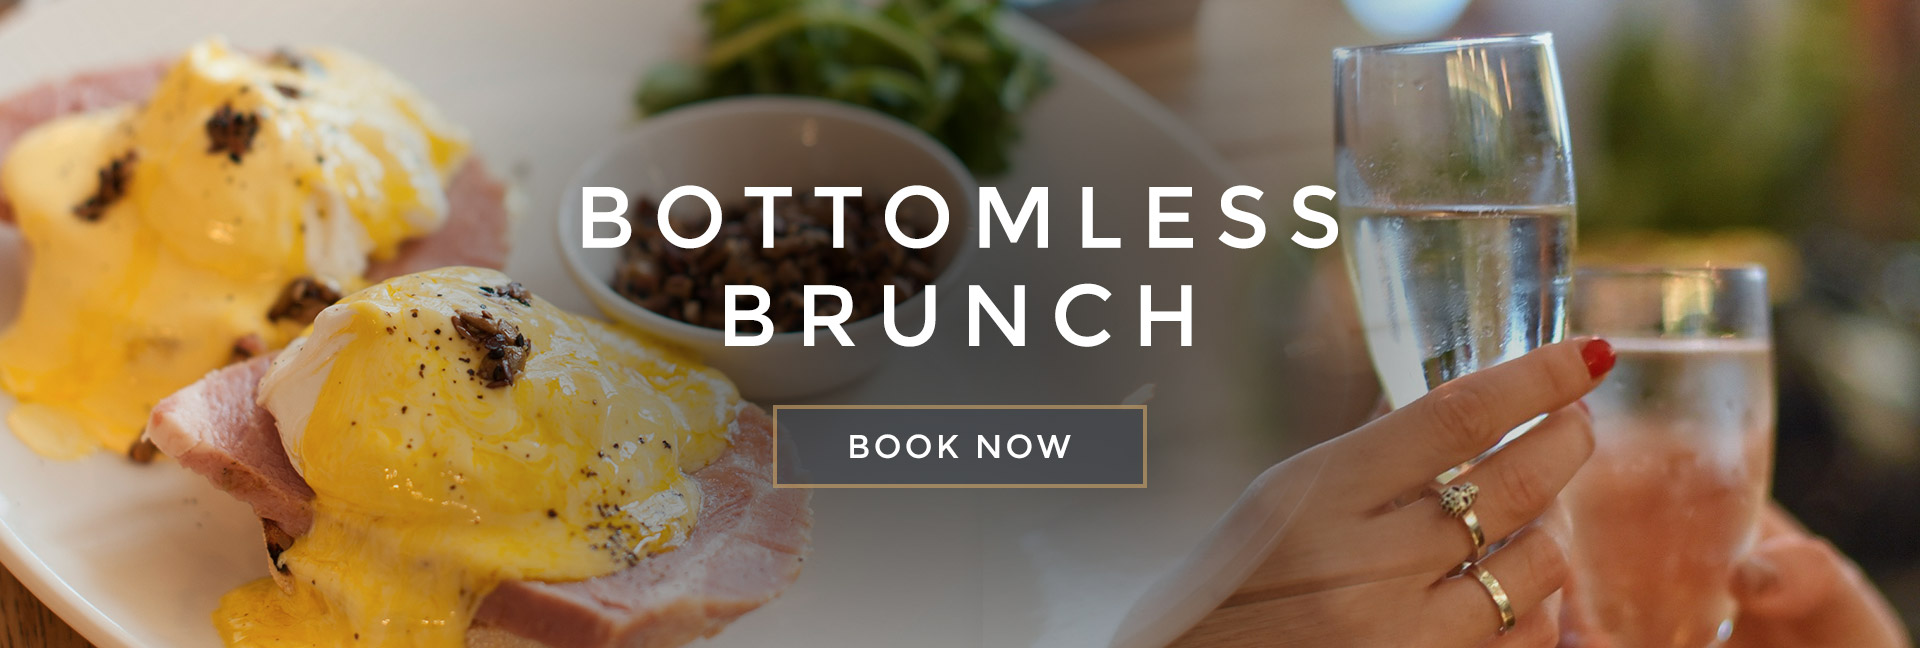 Bottomless Brunch at All Bar One Brighton - Book now